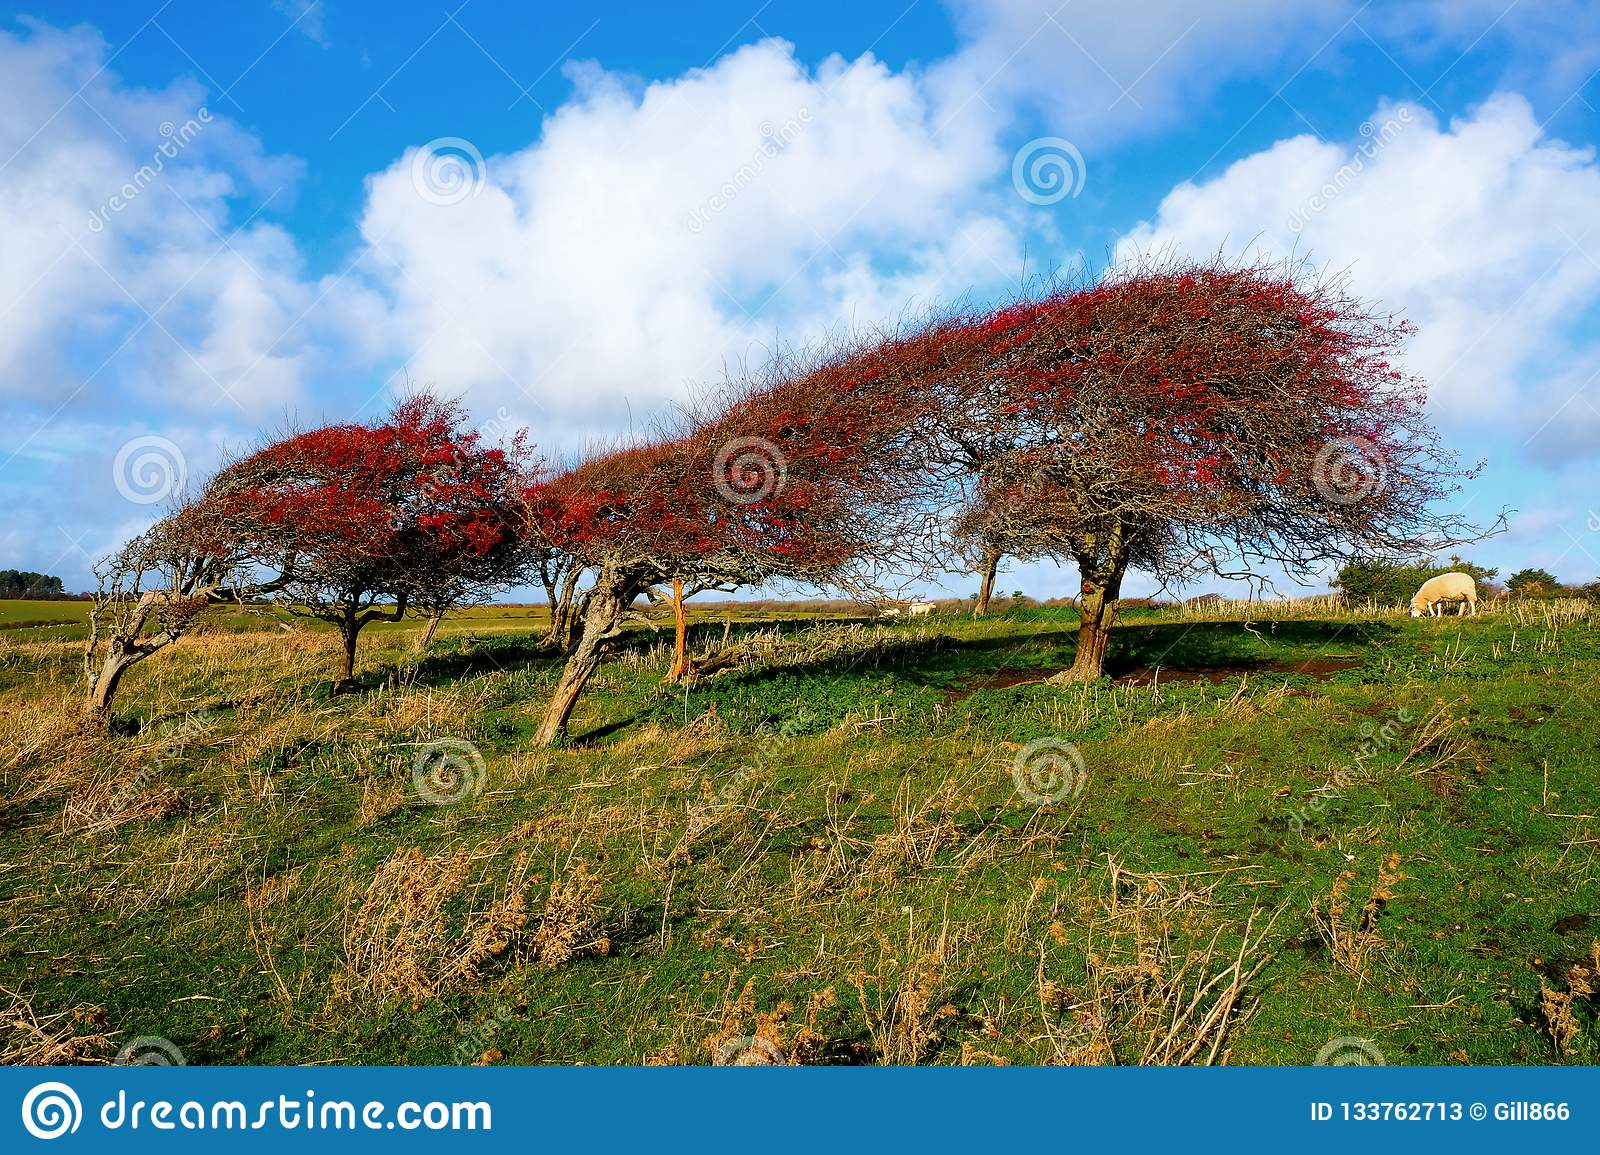 a line of four windswept Ripe red hawthorn berry bush, Crataegus monogyna in a field